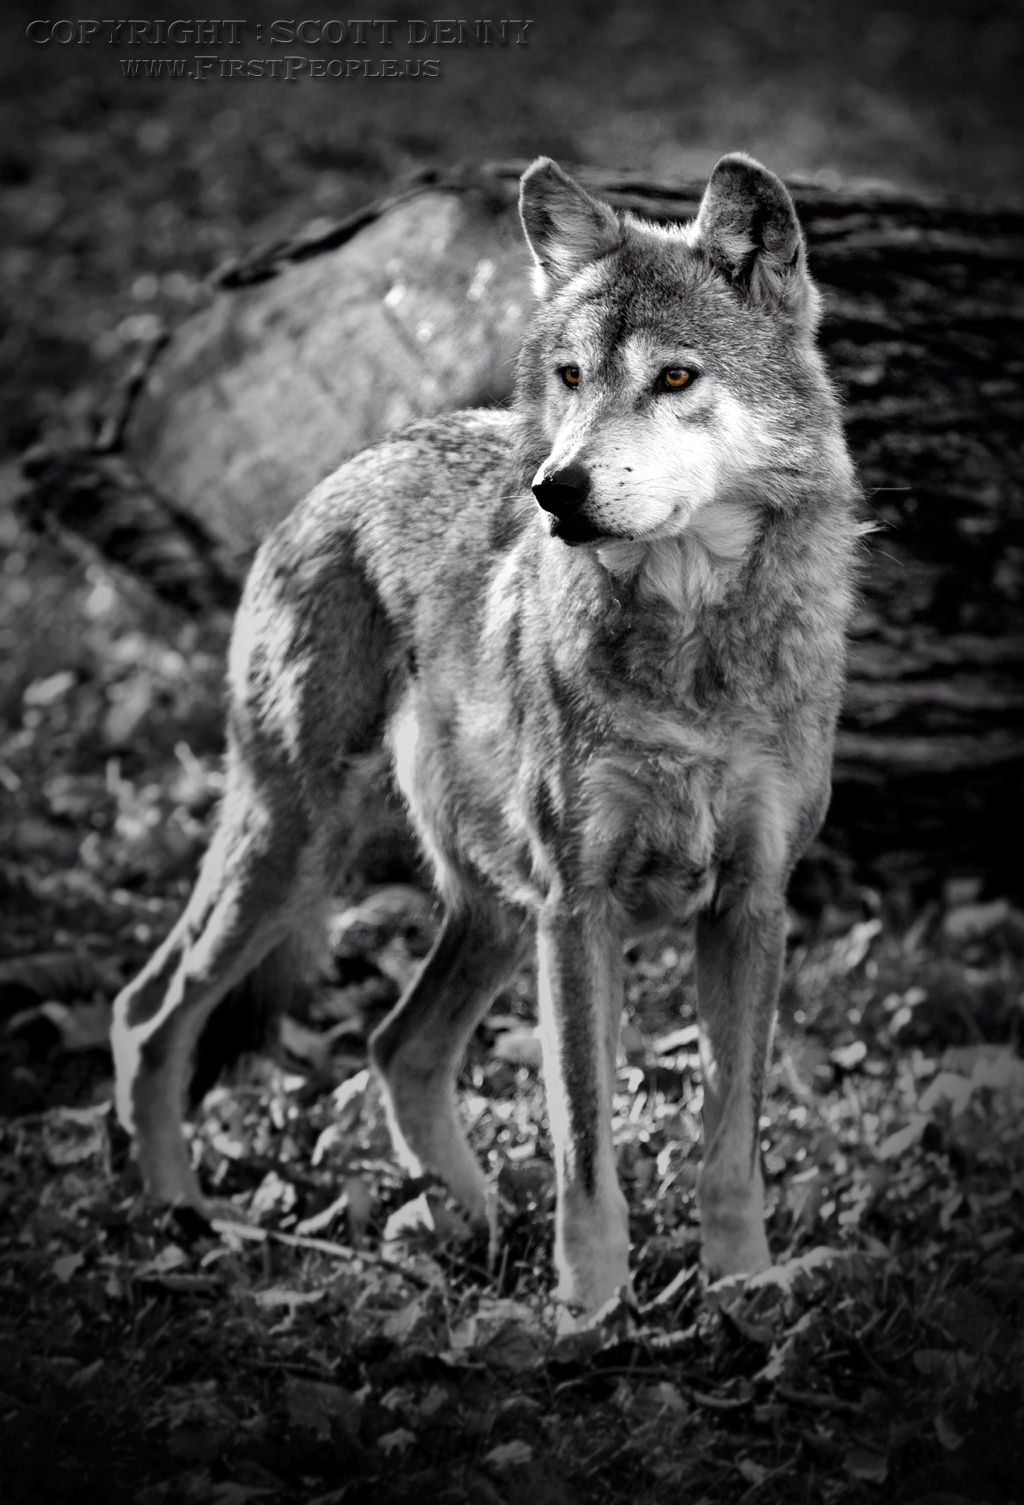 A black and white shot of a mexican gray wolf canis lupus baileyi posing